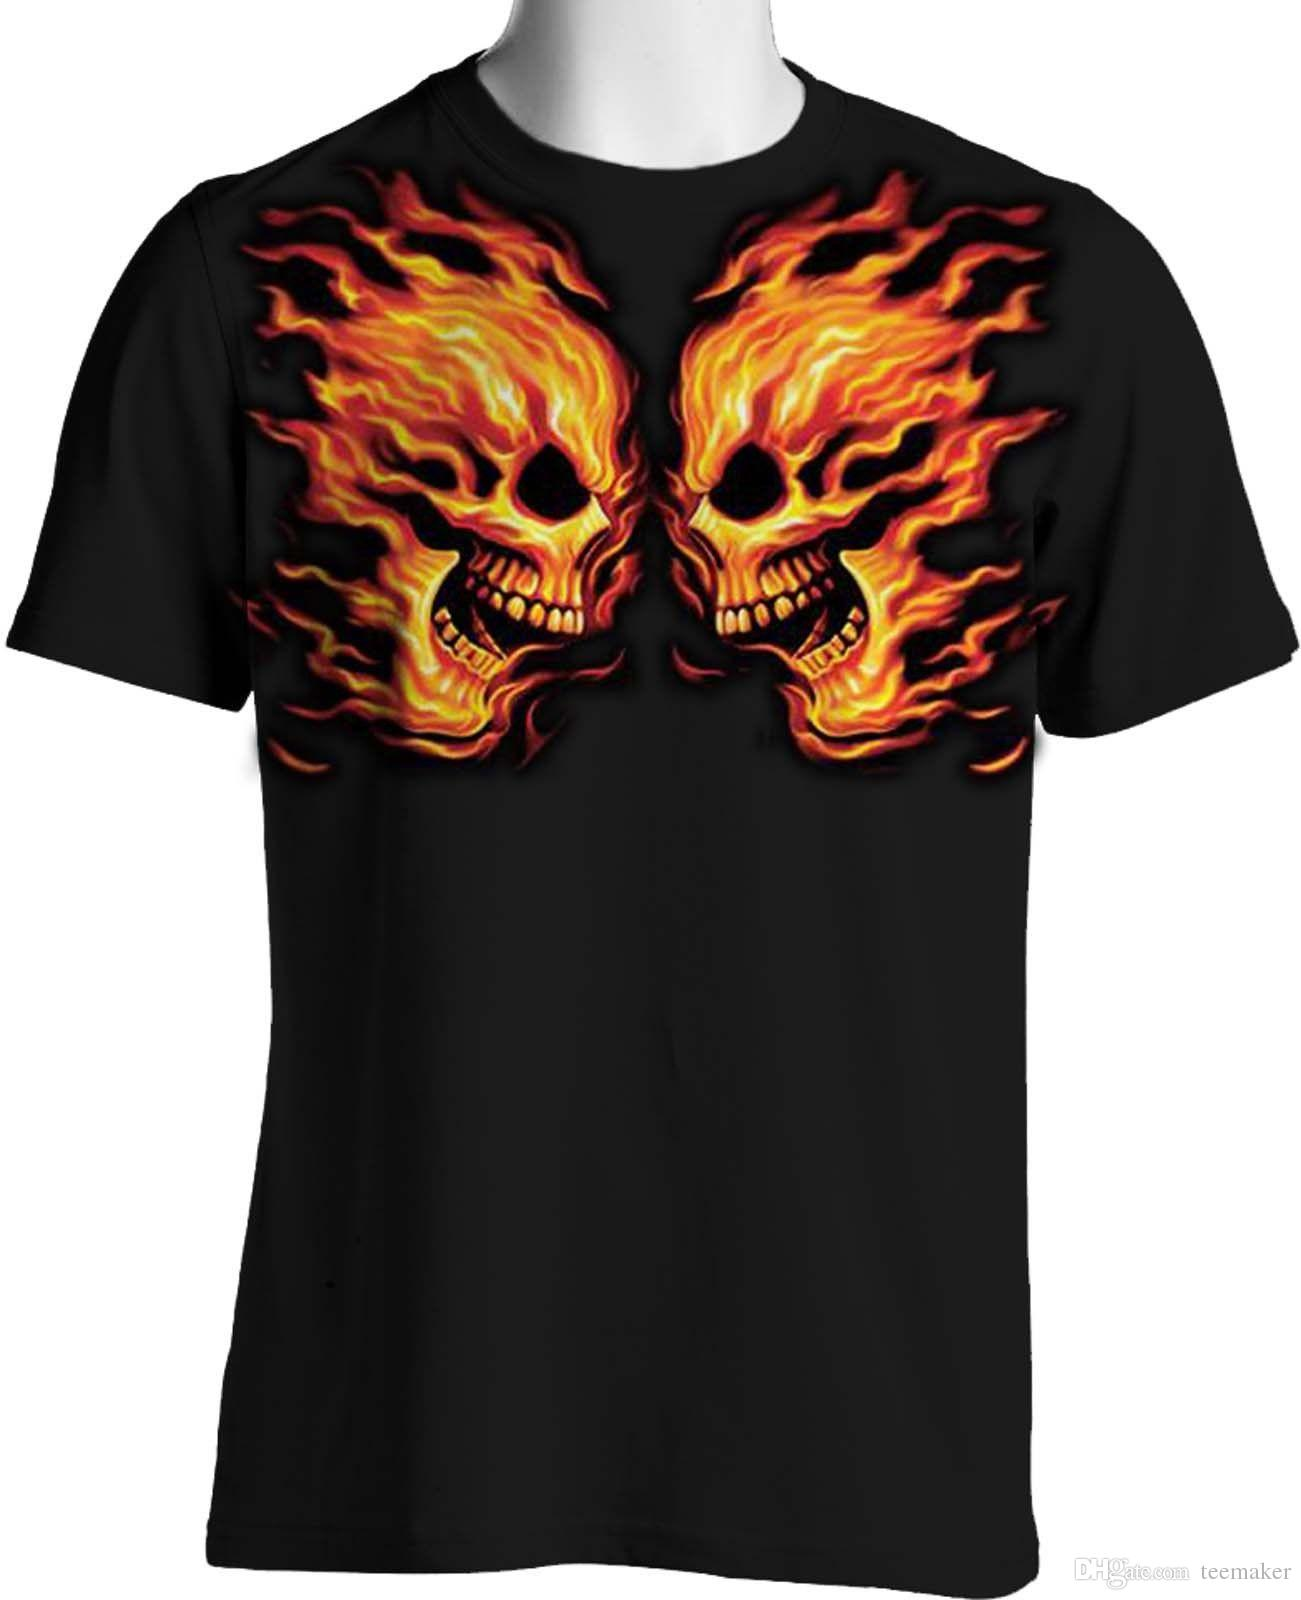 a721a4021 Screaming Flaming Skulls Graphic T Shirt Tattoo Face Mens Big Tall 7X 8X T  Shirt For Men Tailored Custom Short Sleeve Valentine's Plus Size